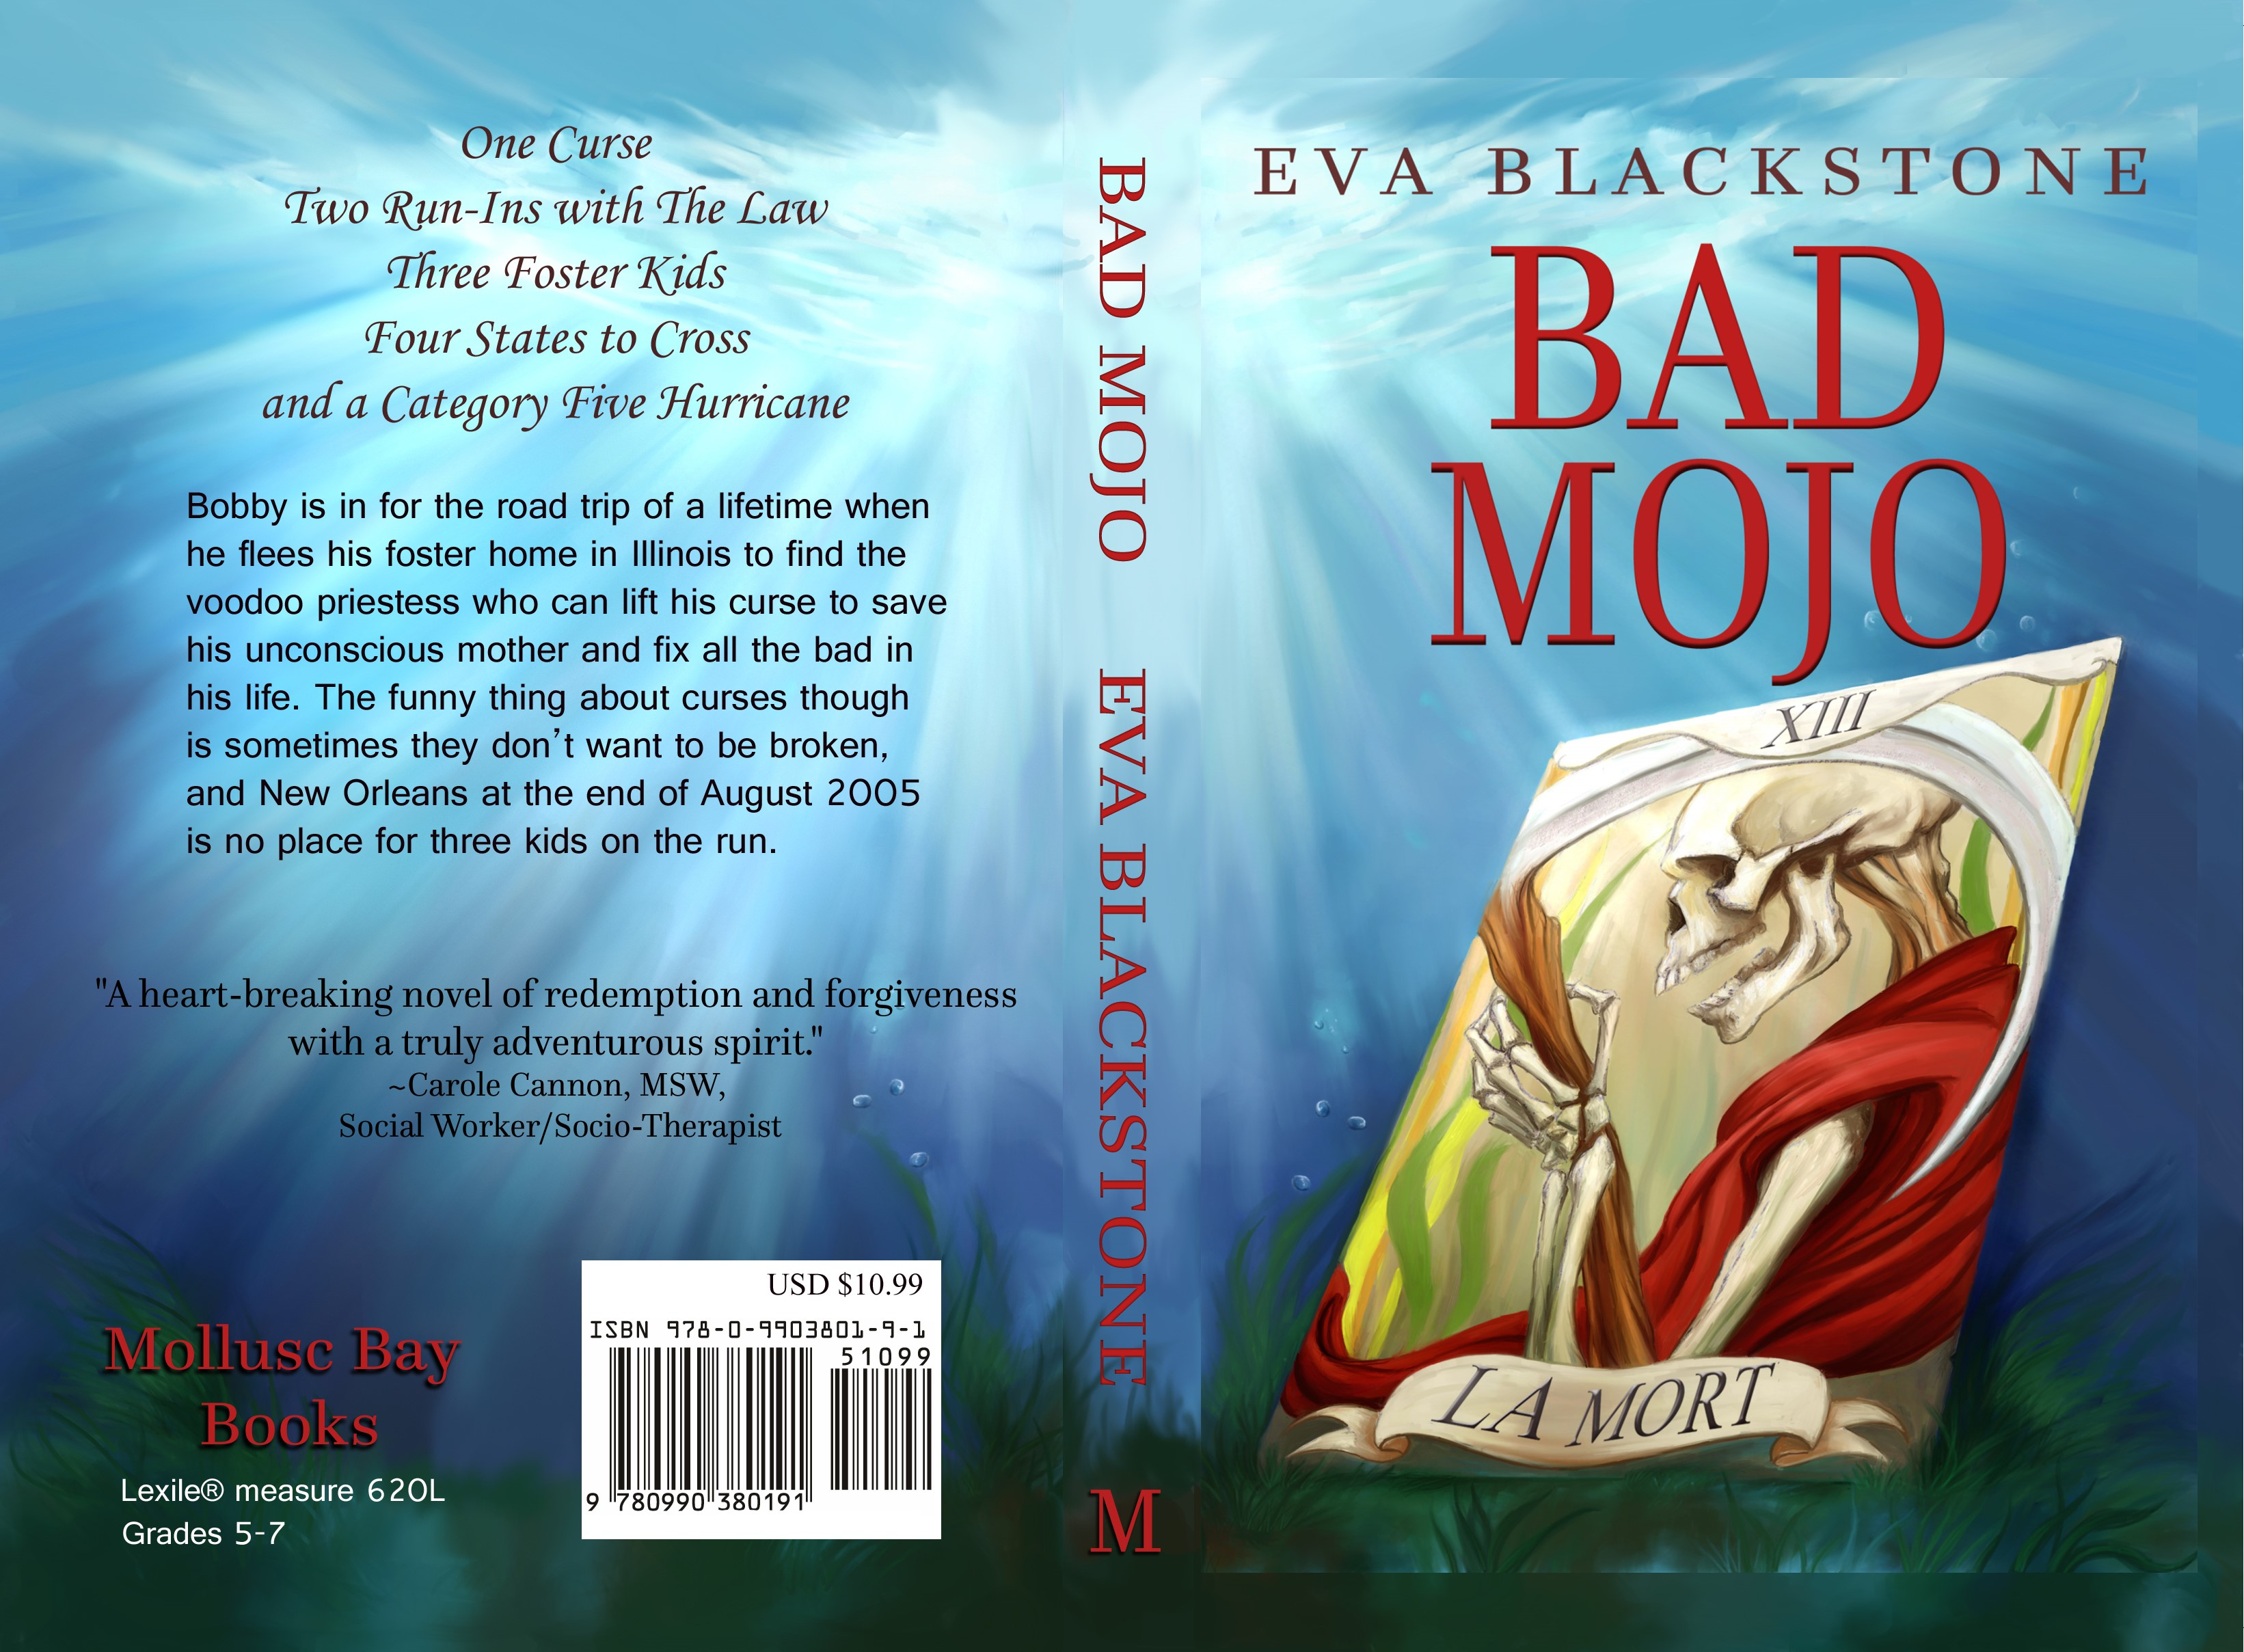 Bad Mojo Cover Design